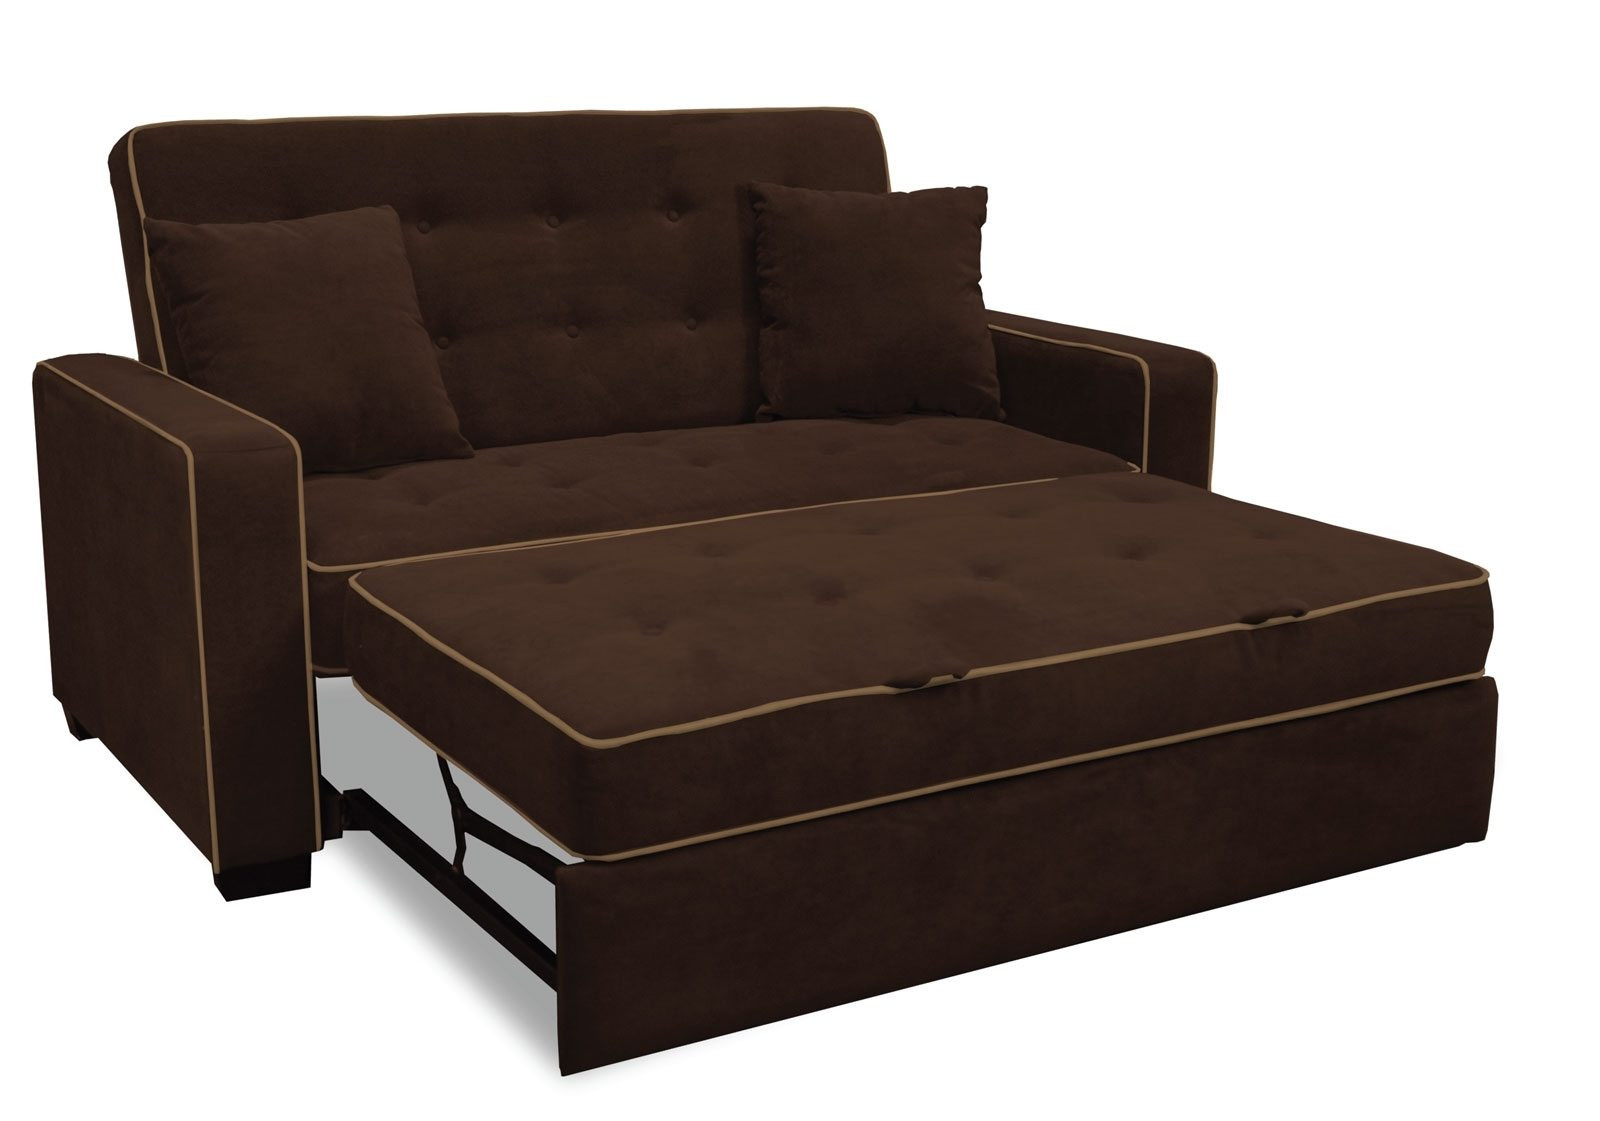 Best ideas about Discount Sleep Sofa . Save or Pin Sofa Enchanting sleeper sofas cheap Sectional Sofa Bed Now.